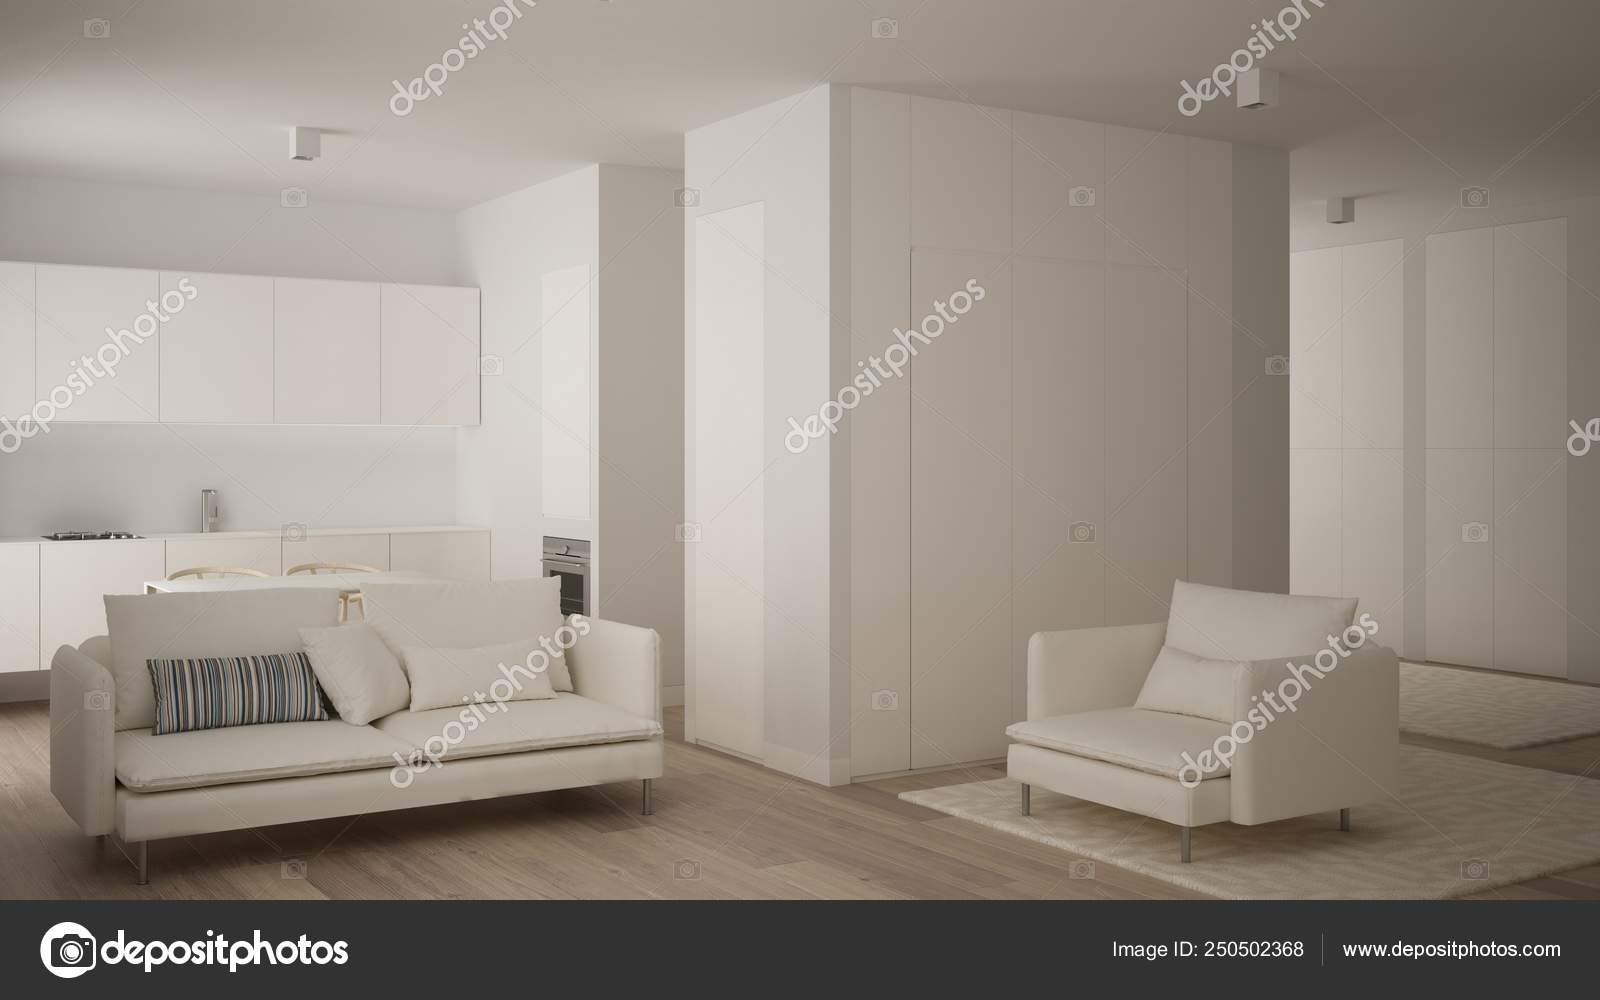 Minimalist White Small Kitchen Design In One Bedroom Apartment With Parquet Floor Dining Table Living Room With Sofa And Armchair Interior Design Modern Contemporary Concept Idea Stock Photo C Archiviz 250502368